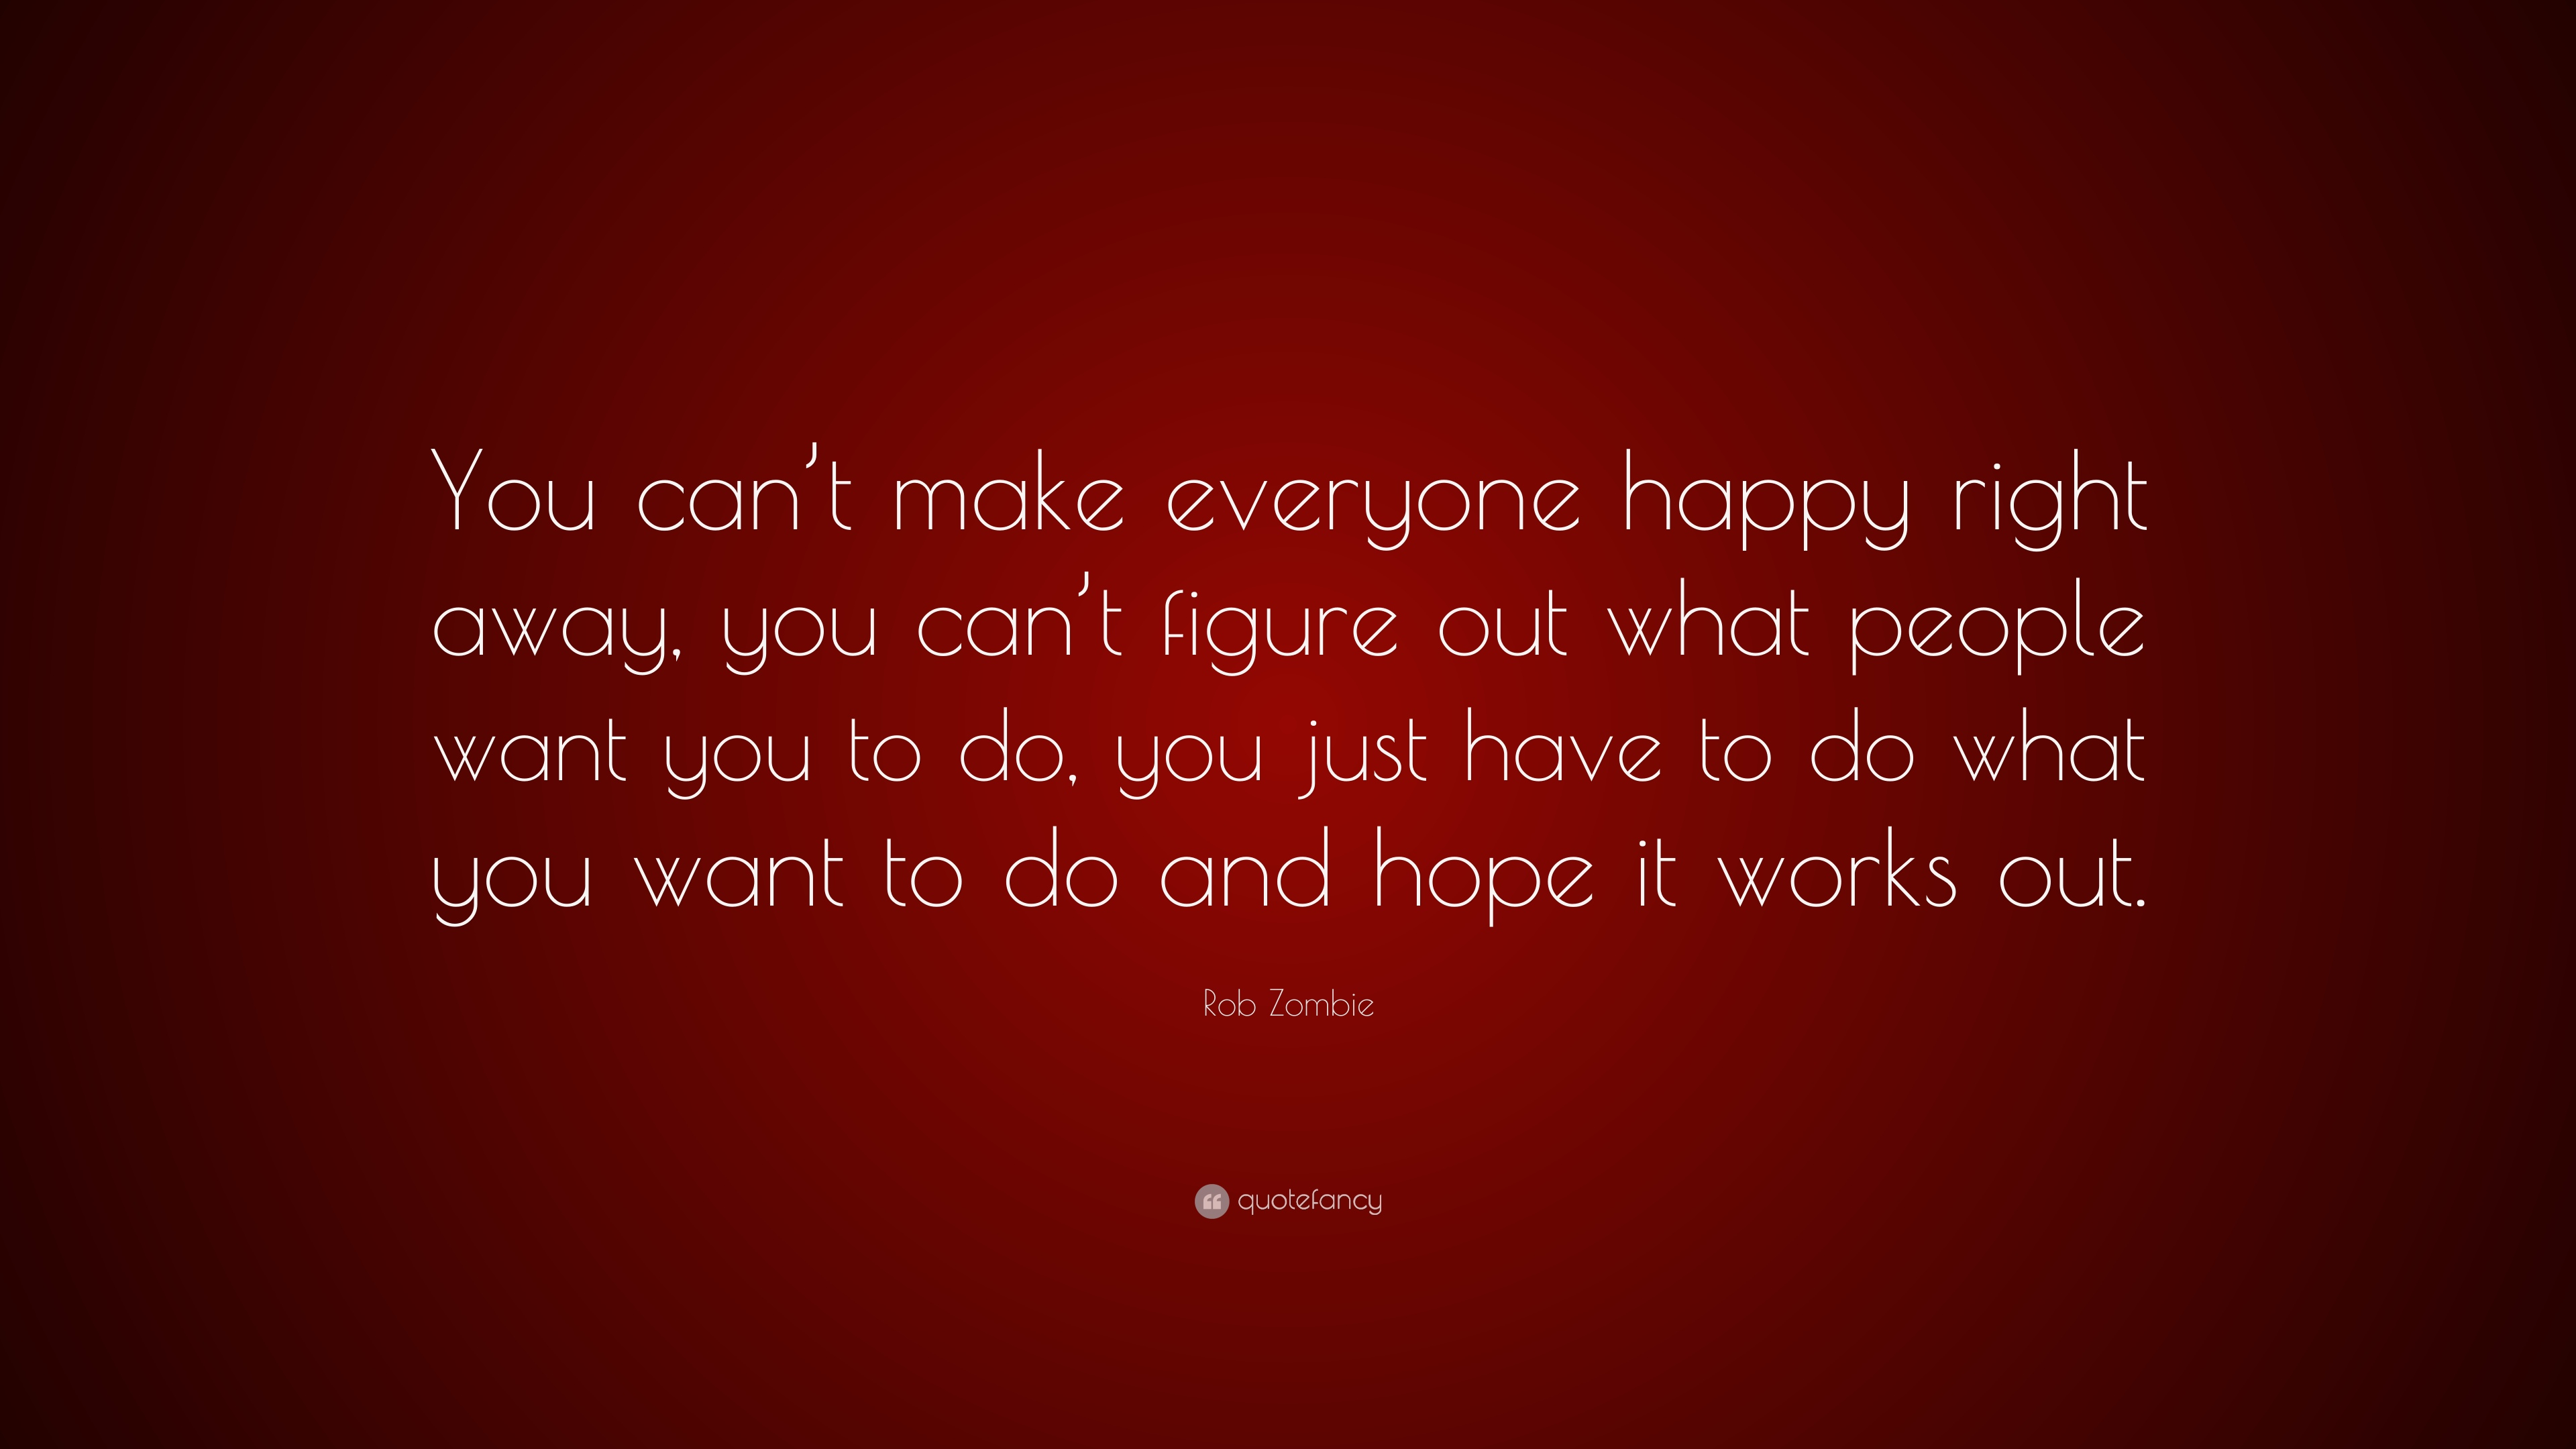 Rob Zombie Quote You Cant Make Everyone Happy Right Away You Can